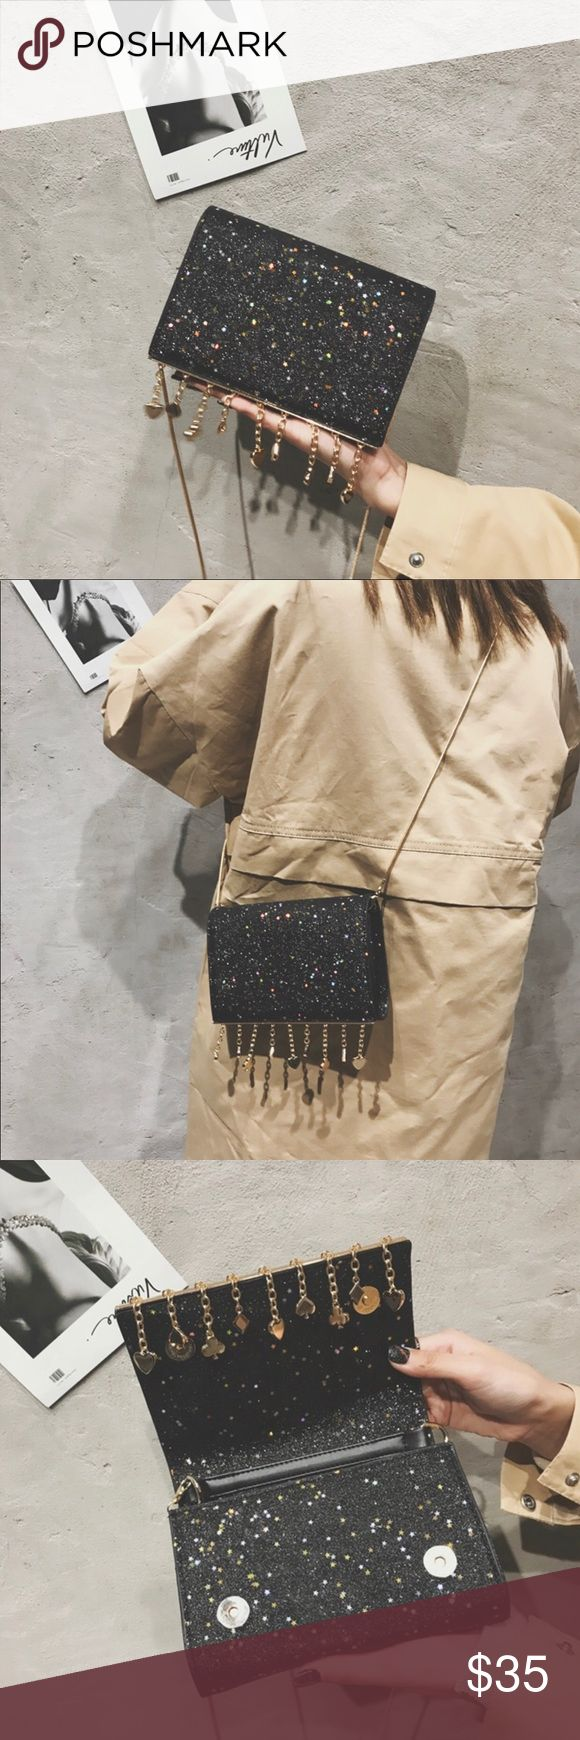 Cute Crossbody !!Brand New !!Size :8*5*1.8in !!Material :PU    Weight:0.6Ib !!Capaticy:7 plus /8 plus case !! Next day shipping Bags Crossbody Bags